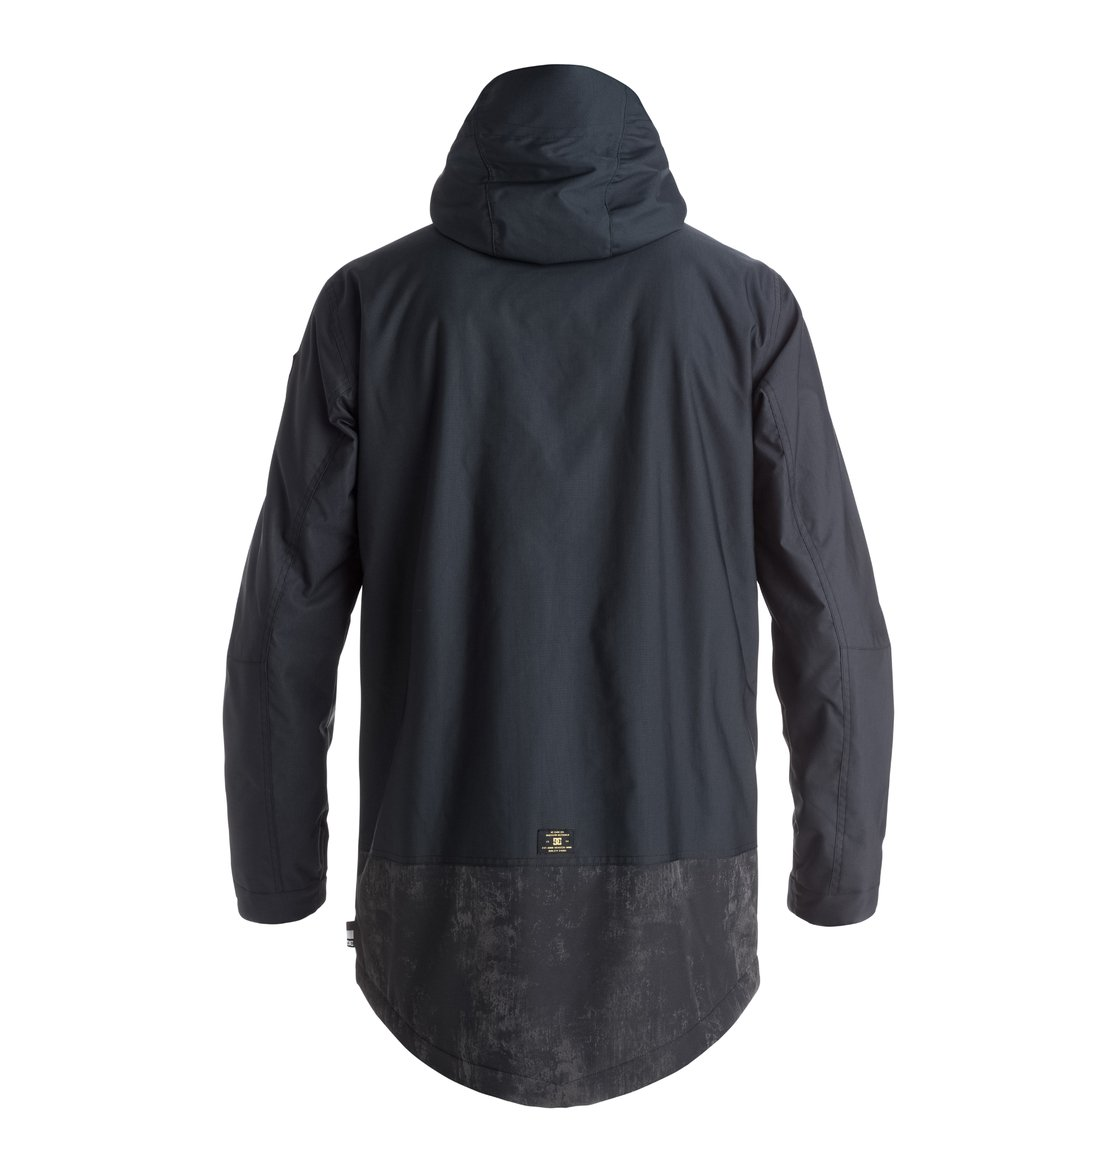 5938f00b6595 100% top quality 3189e 1f3bb feature image for dc outerwear ...